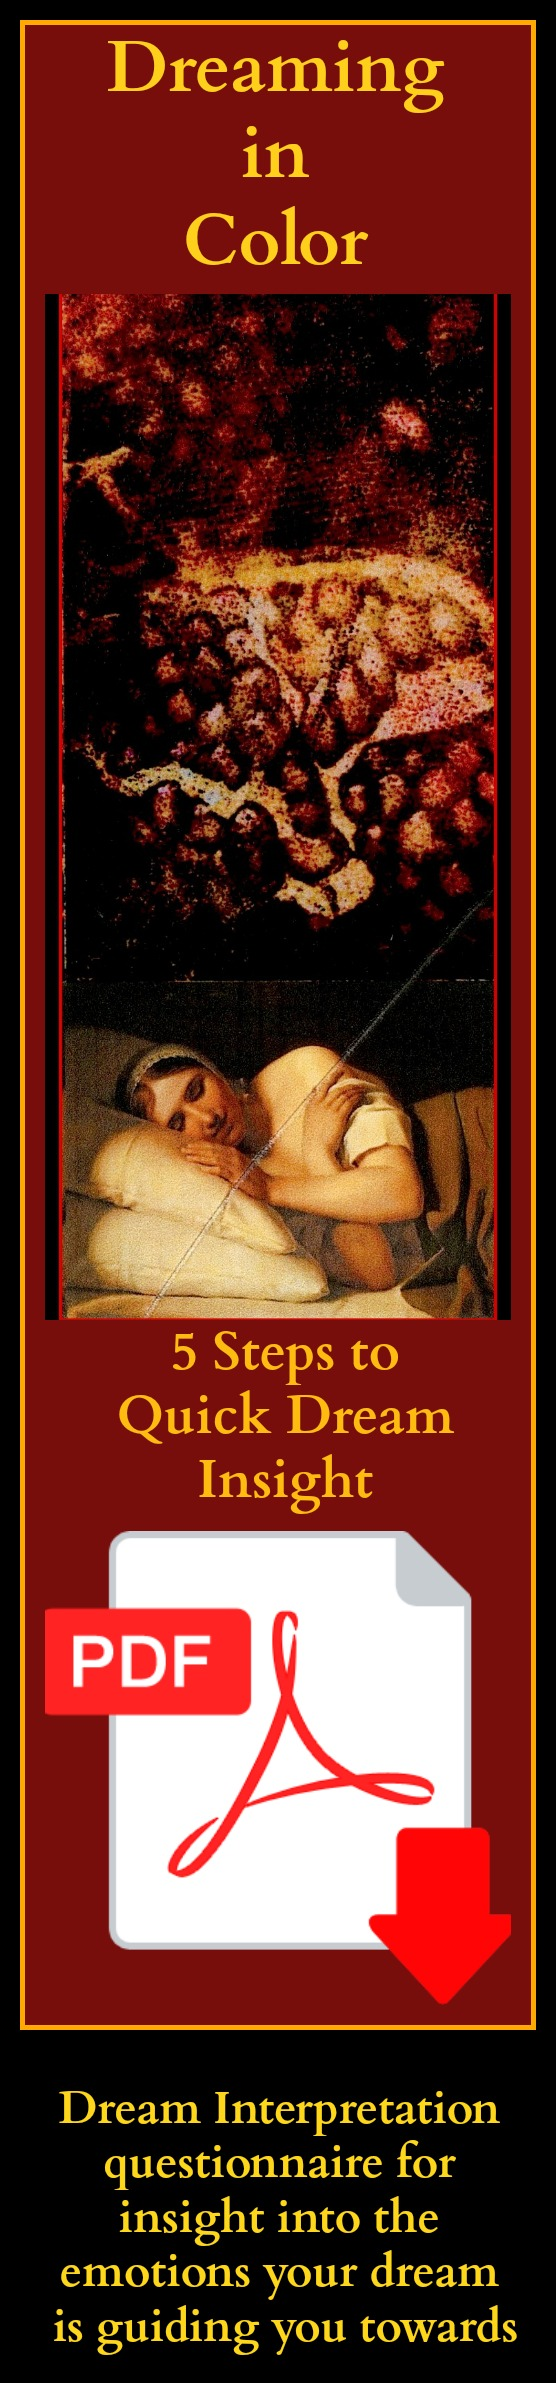 dreaming in color, dream interpretation, analyzing dreams, strategy of the spirit, strategies of the spirit, dream work